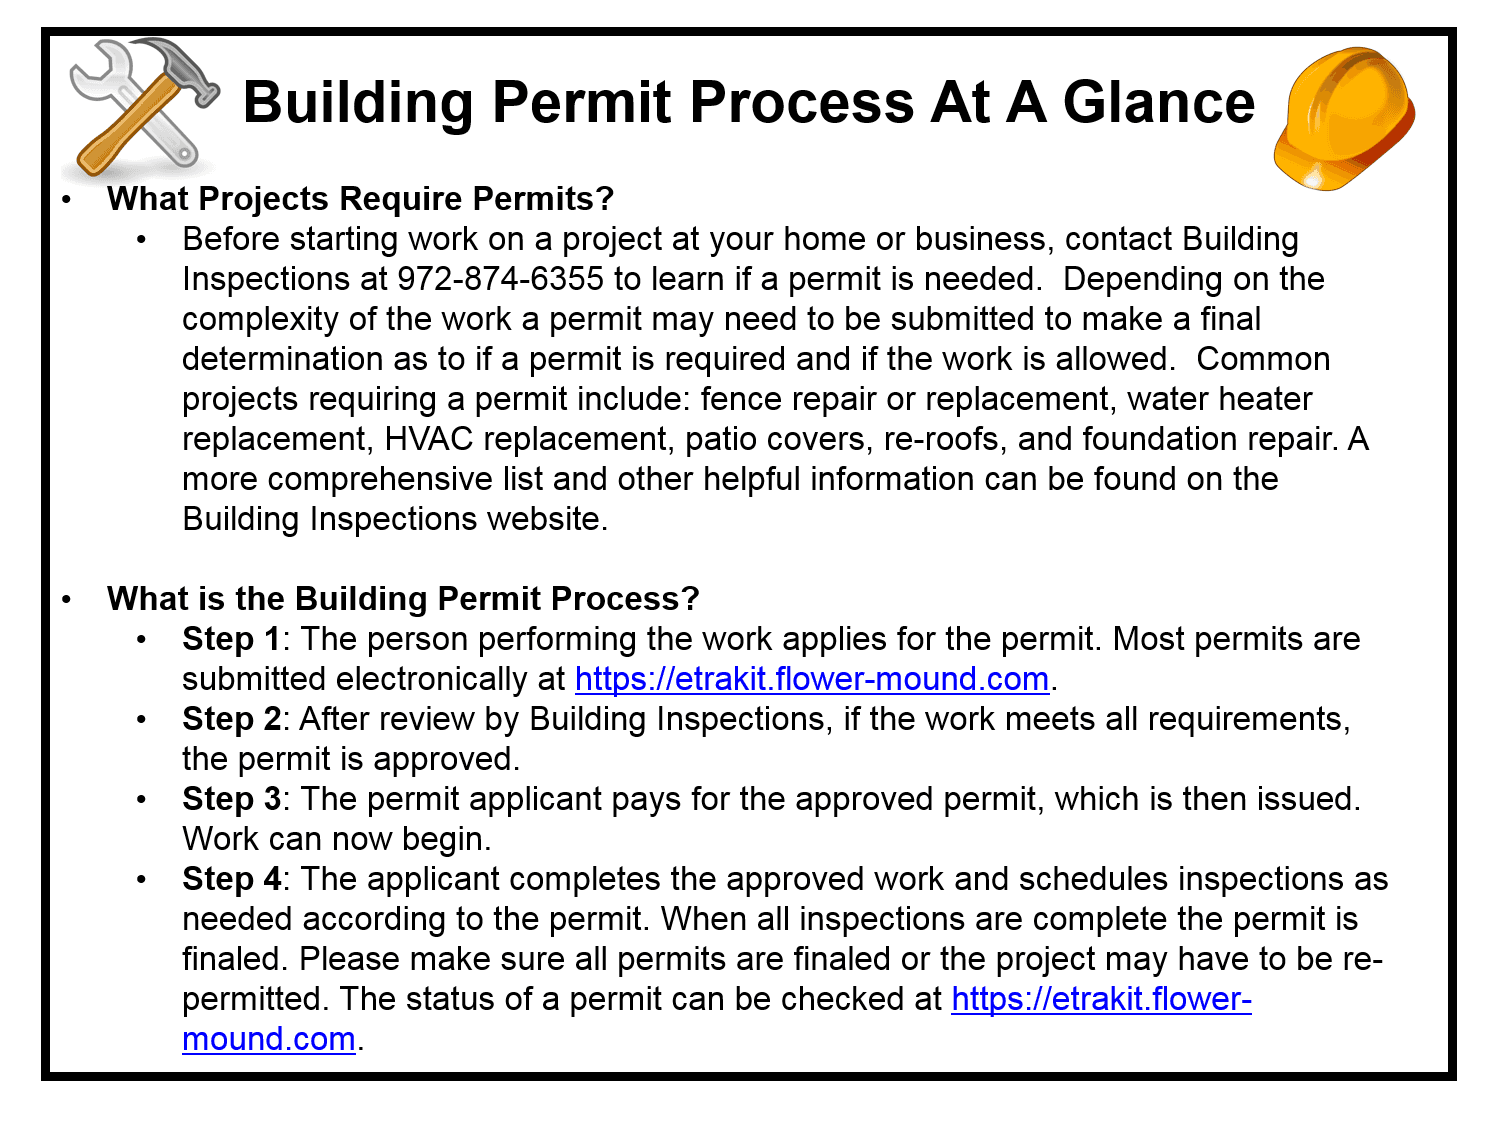 BUILDING PERMIT PROCESS AT A GLANCE